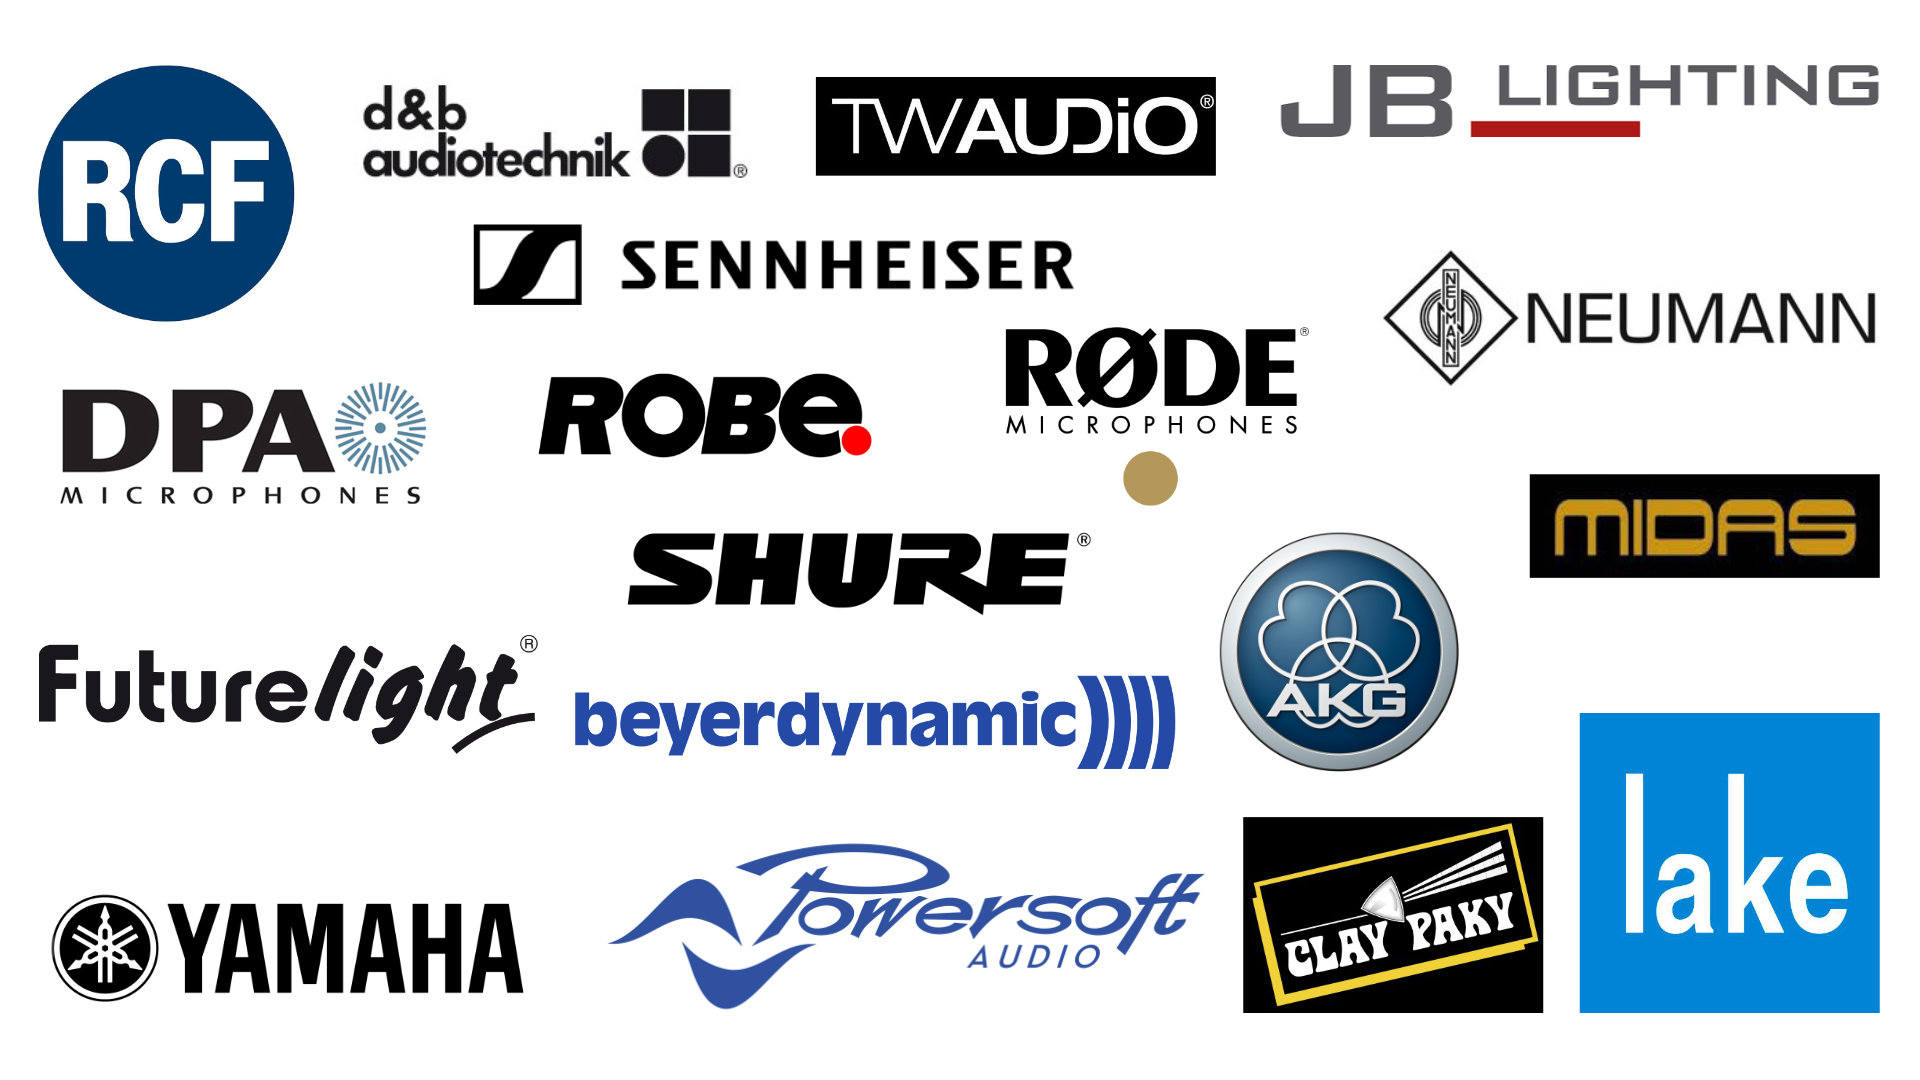 TW Audio, D&B, RCF, Lake, Powersoft, Midas, Yamaha, Shure, Bayerdynamic, Sennheisser, Neumann, AKG, Rode, JB-Lighting, Futurelight, Robe, Clay Packy, Panasonic usw.